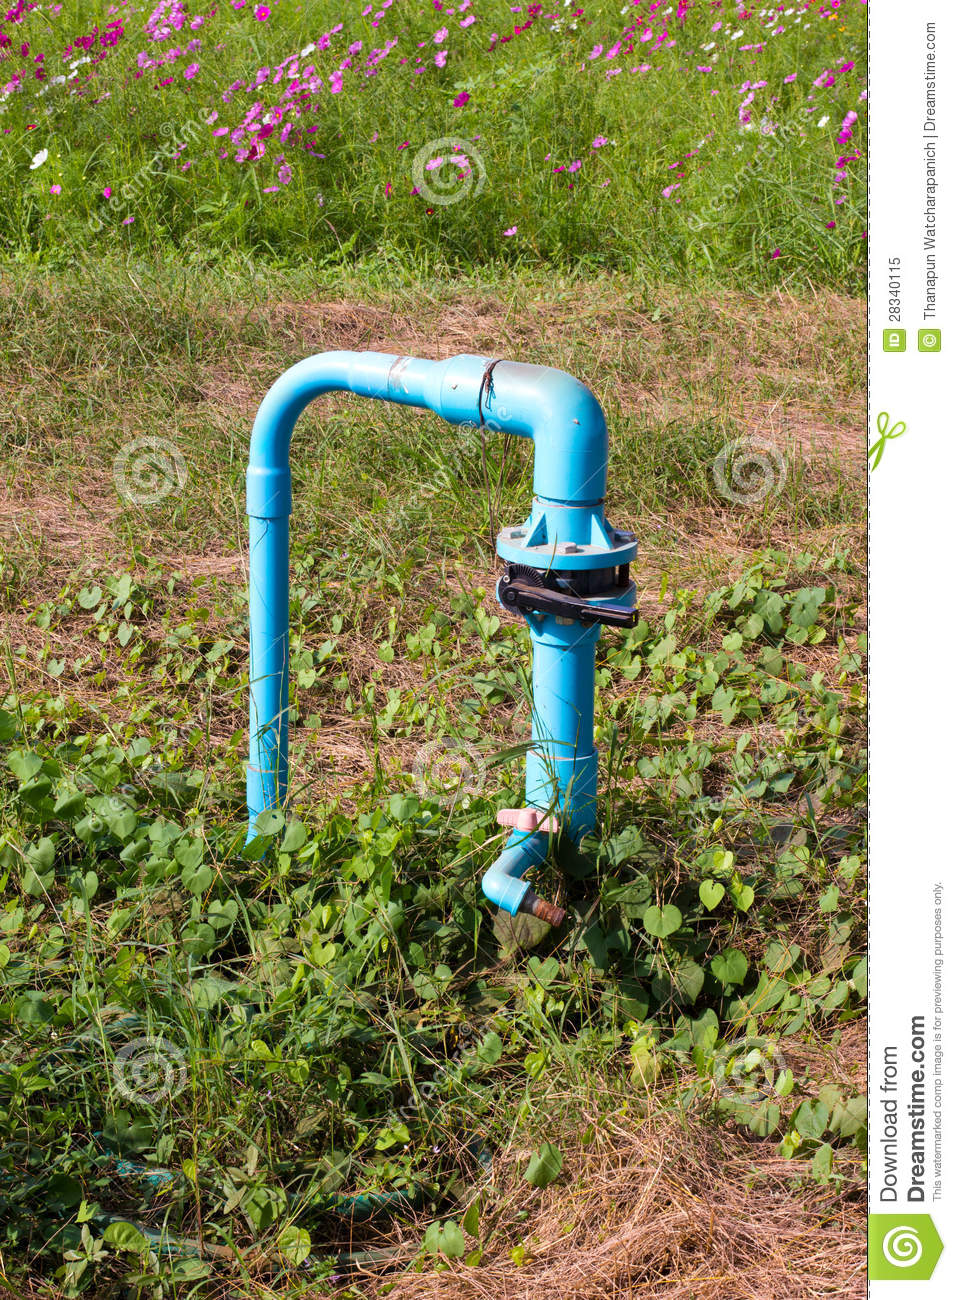 How to Use Pressure and Flow Switches with Irrigation ...